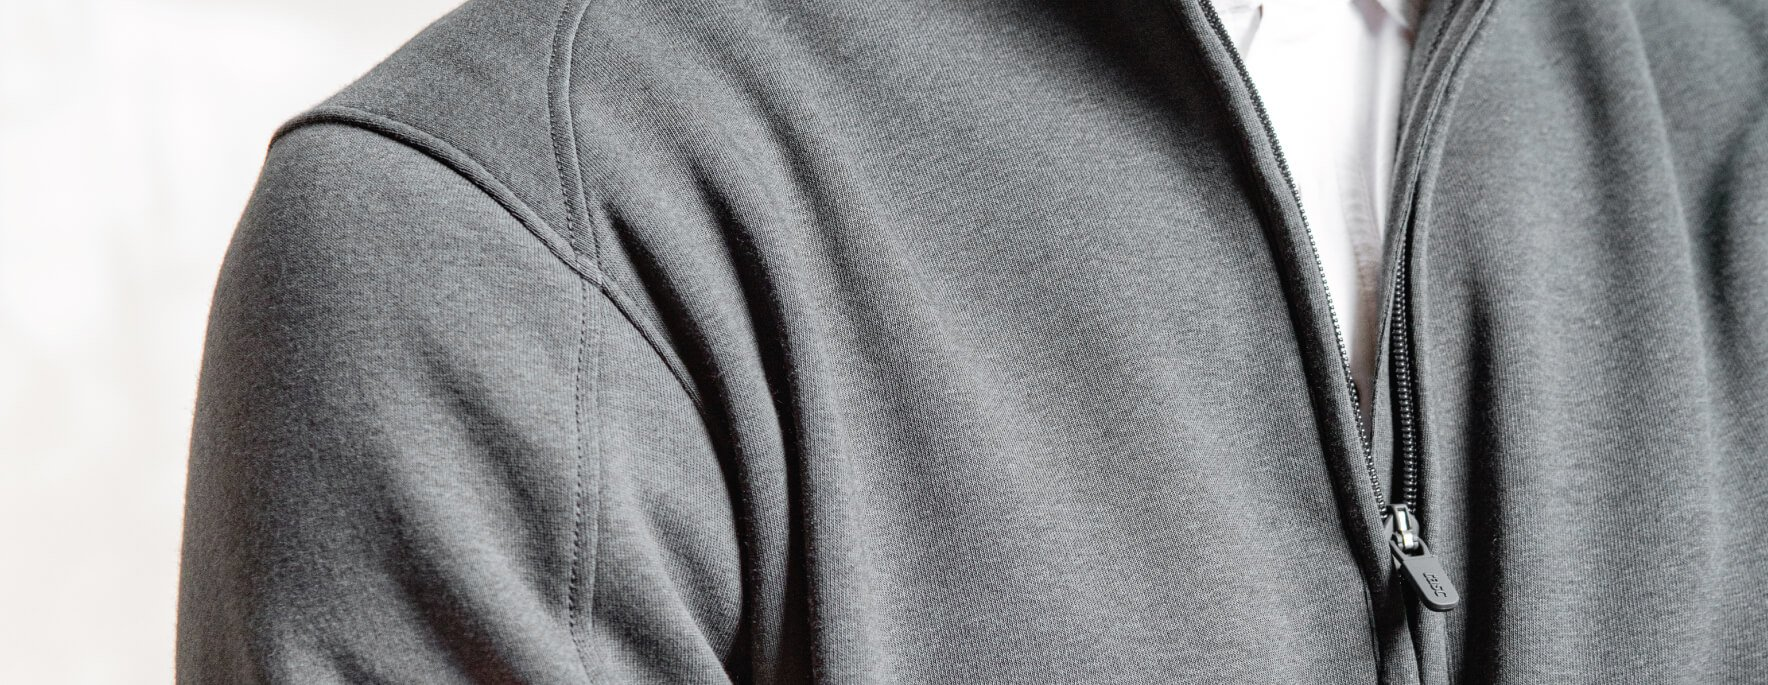 Men's bamboo clothing collection by tasc Performance